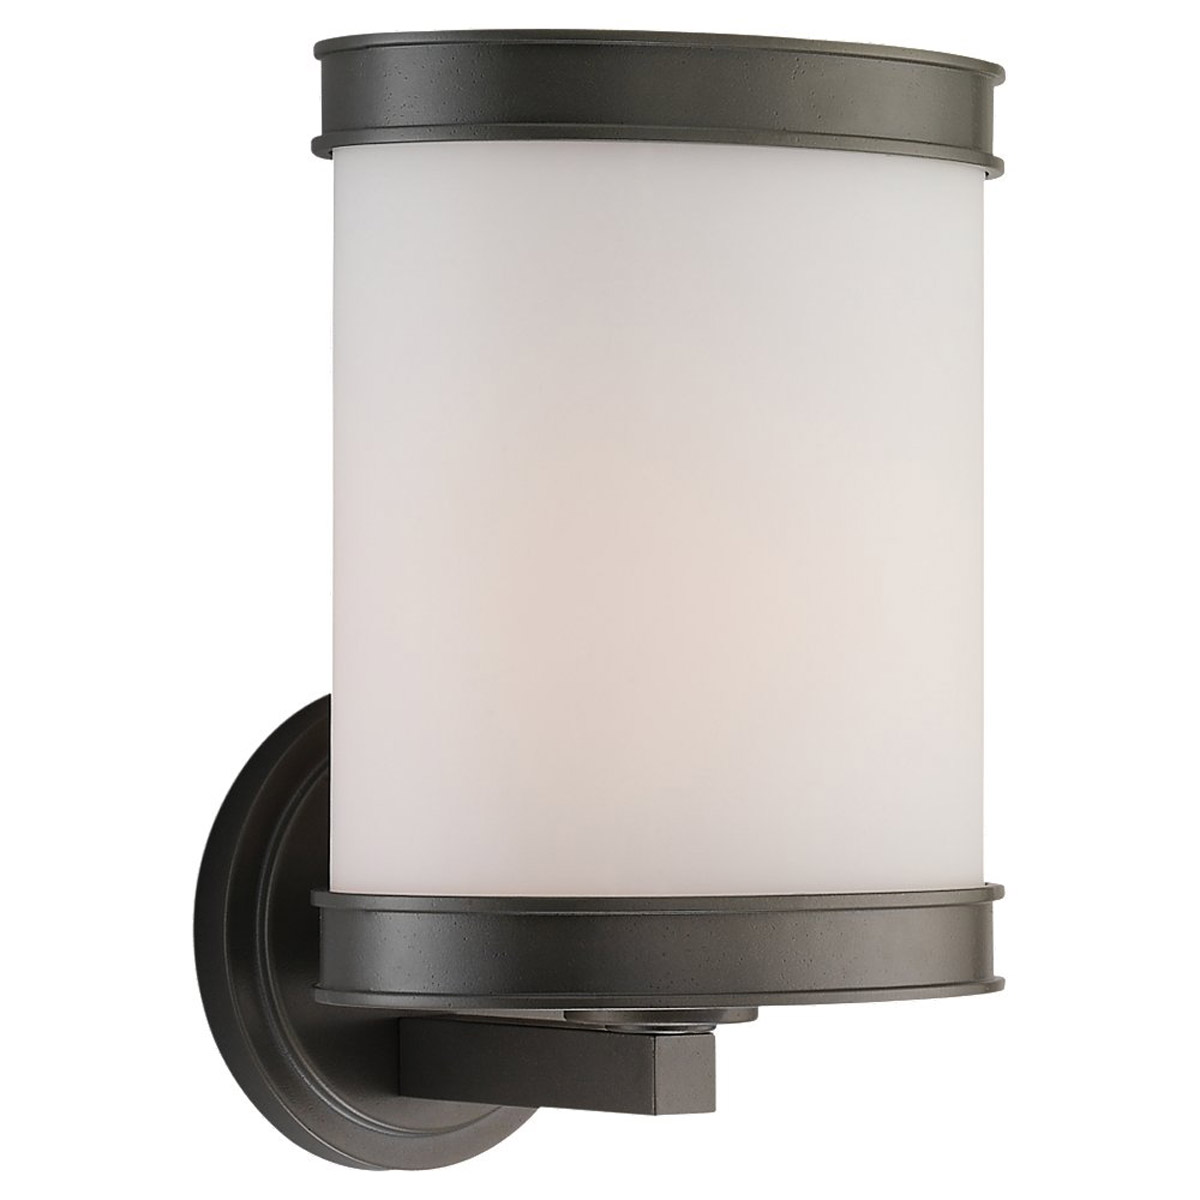 Sea Gull Lighting Amsterdam 1 Light Outdoor Wall Lantern in Rustic Pewter 88886-850 photo